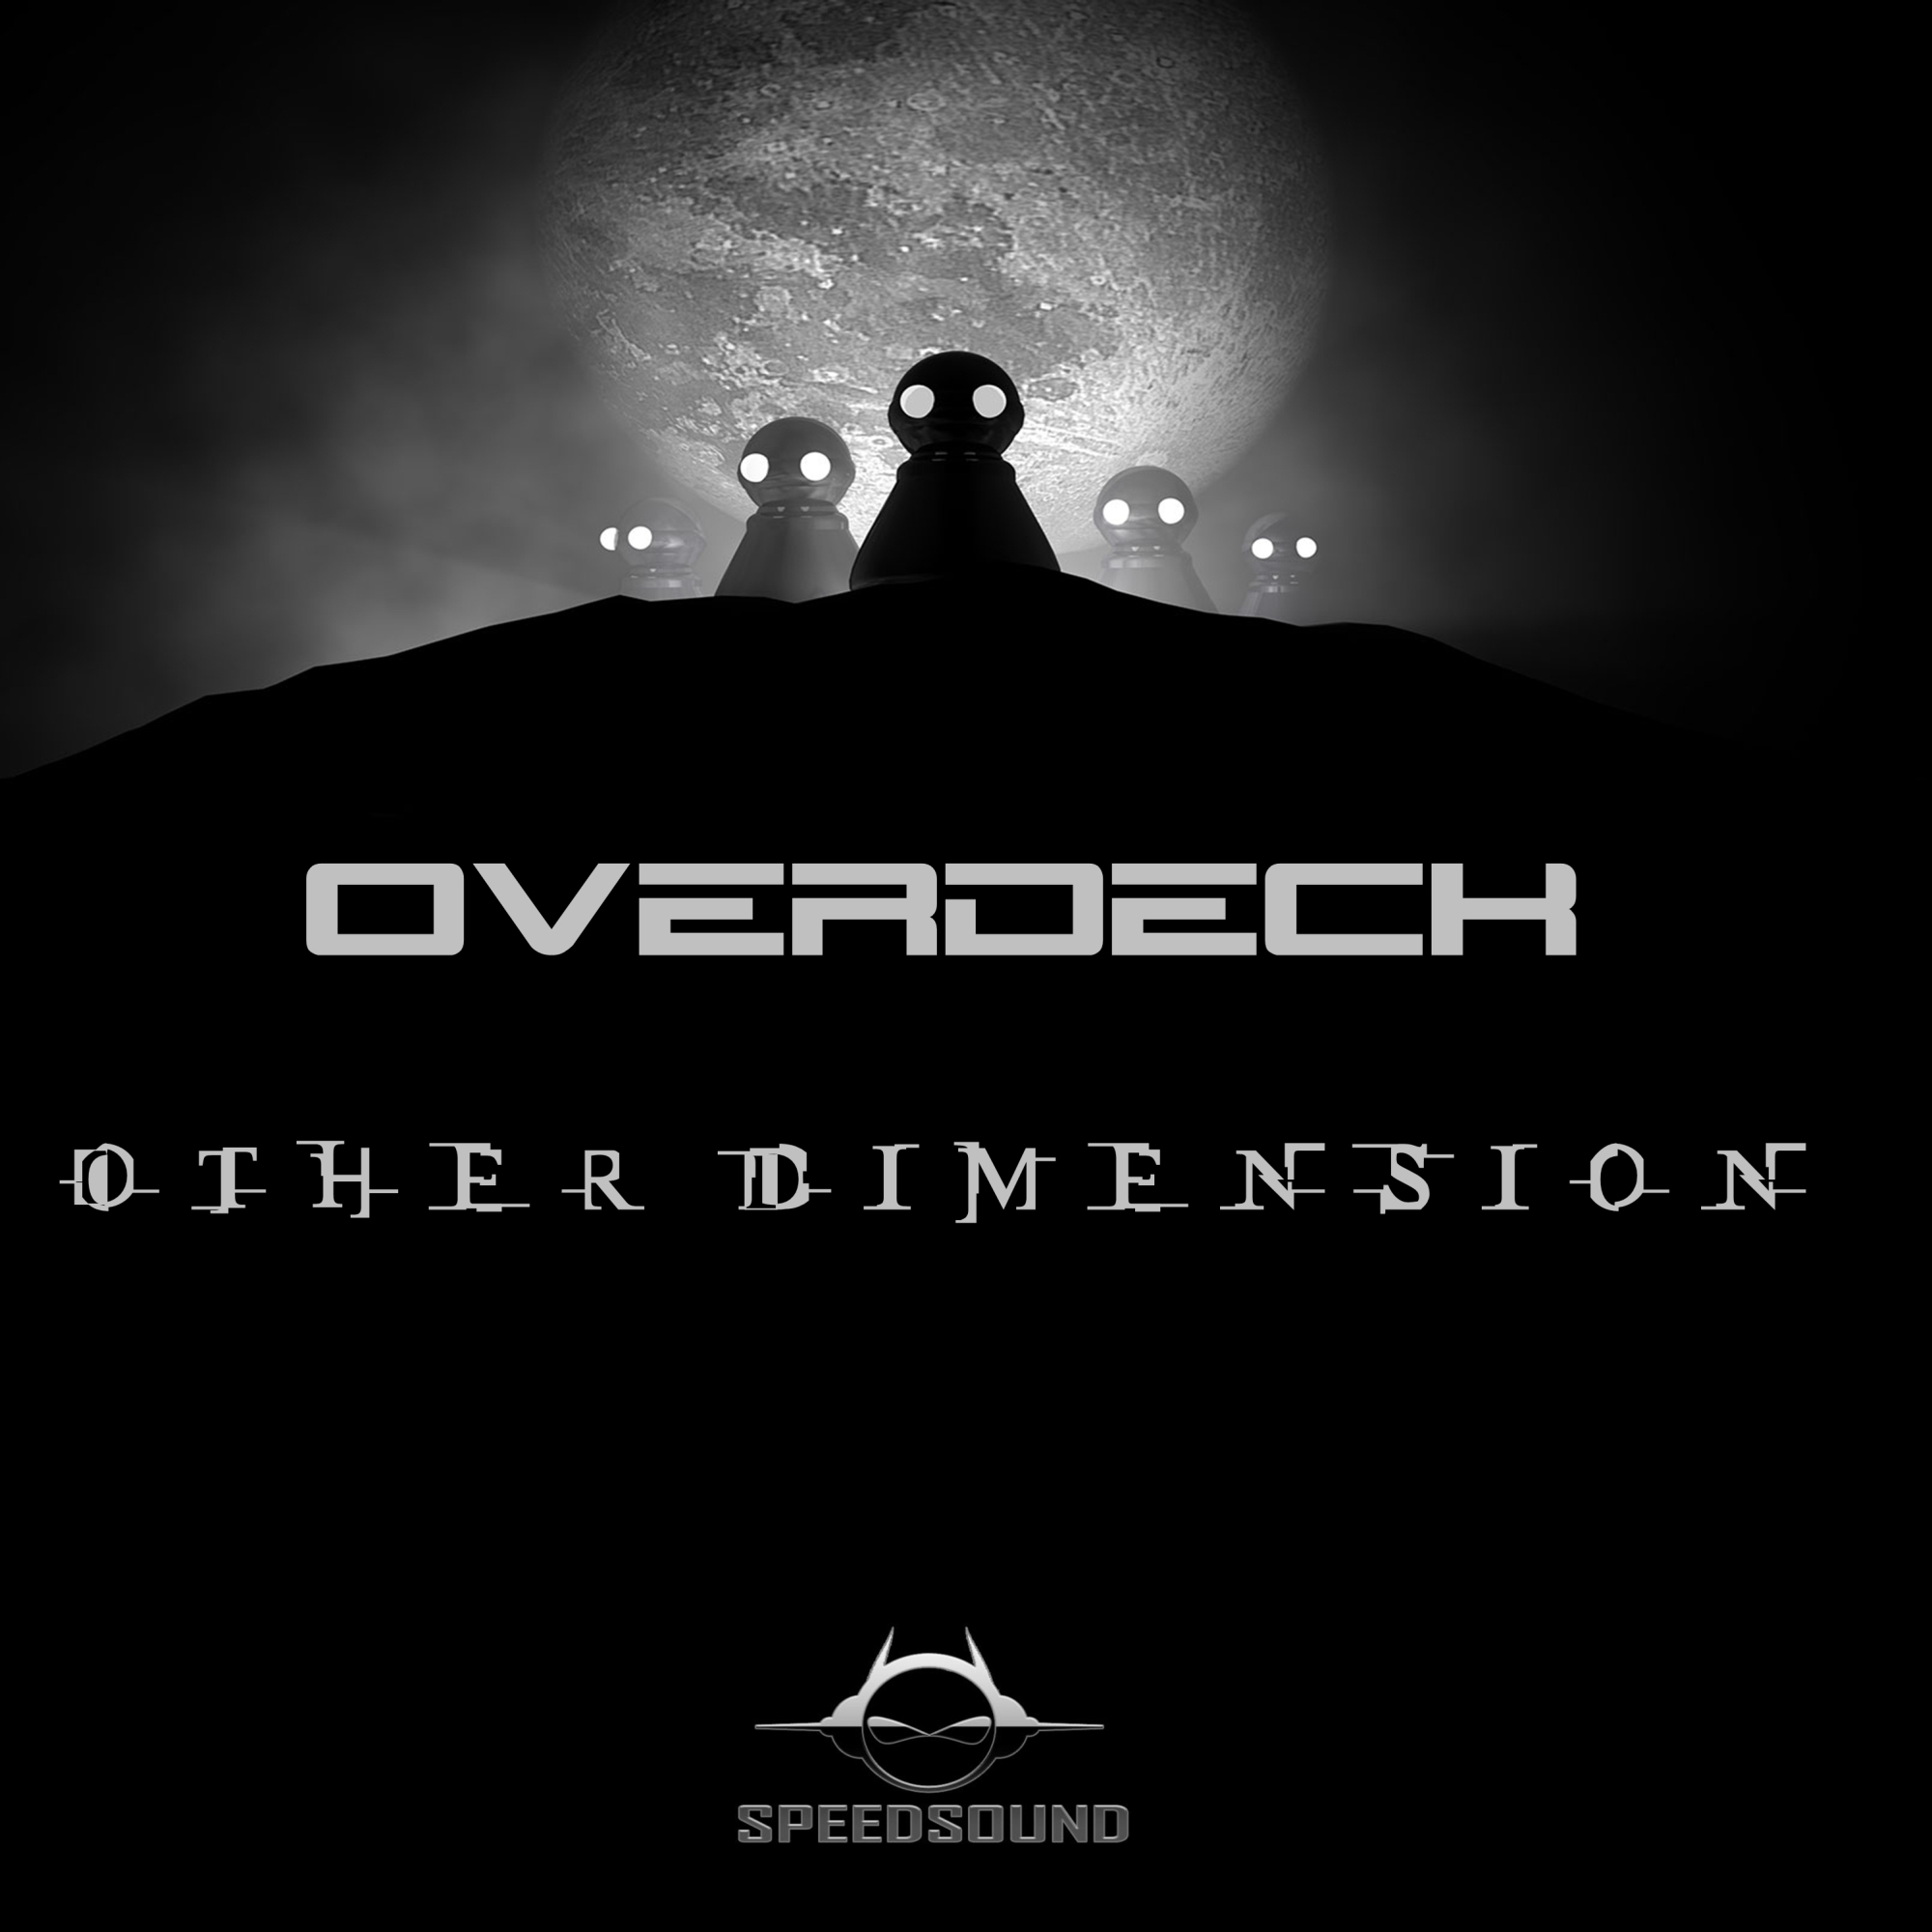 Overdeck - Other Dimension (Original Mix)